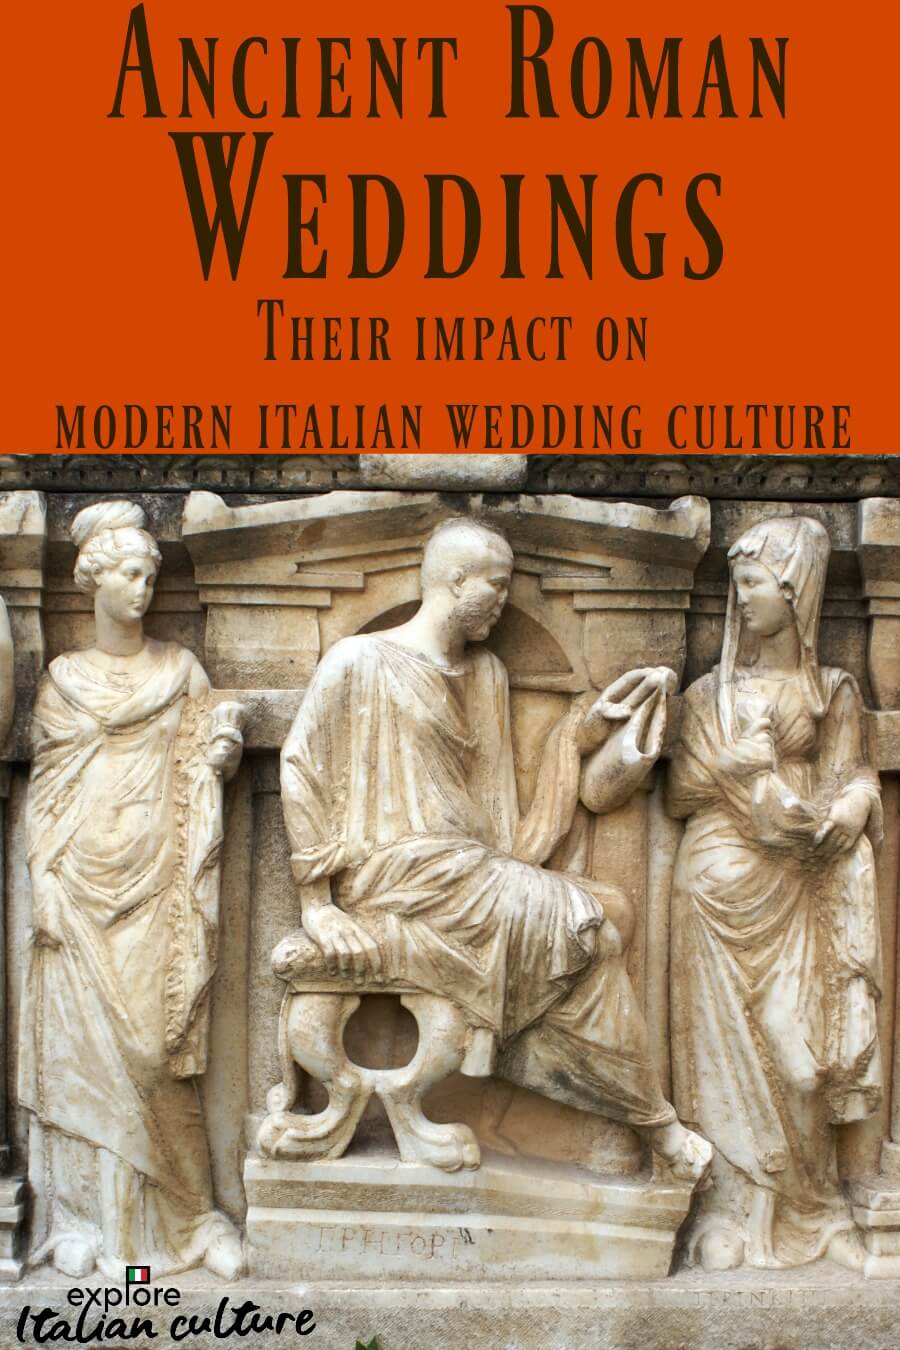 Ancient Roman weddings